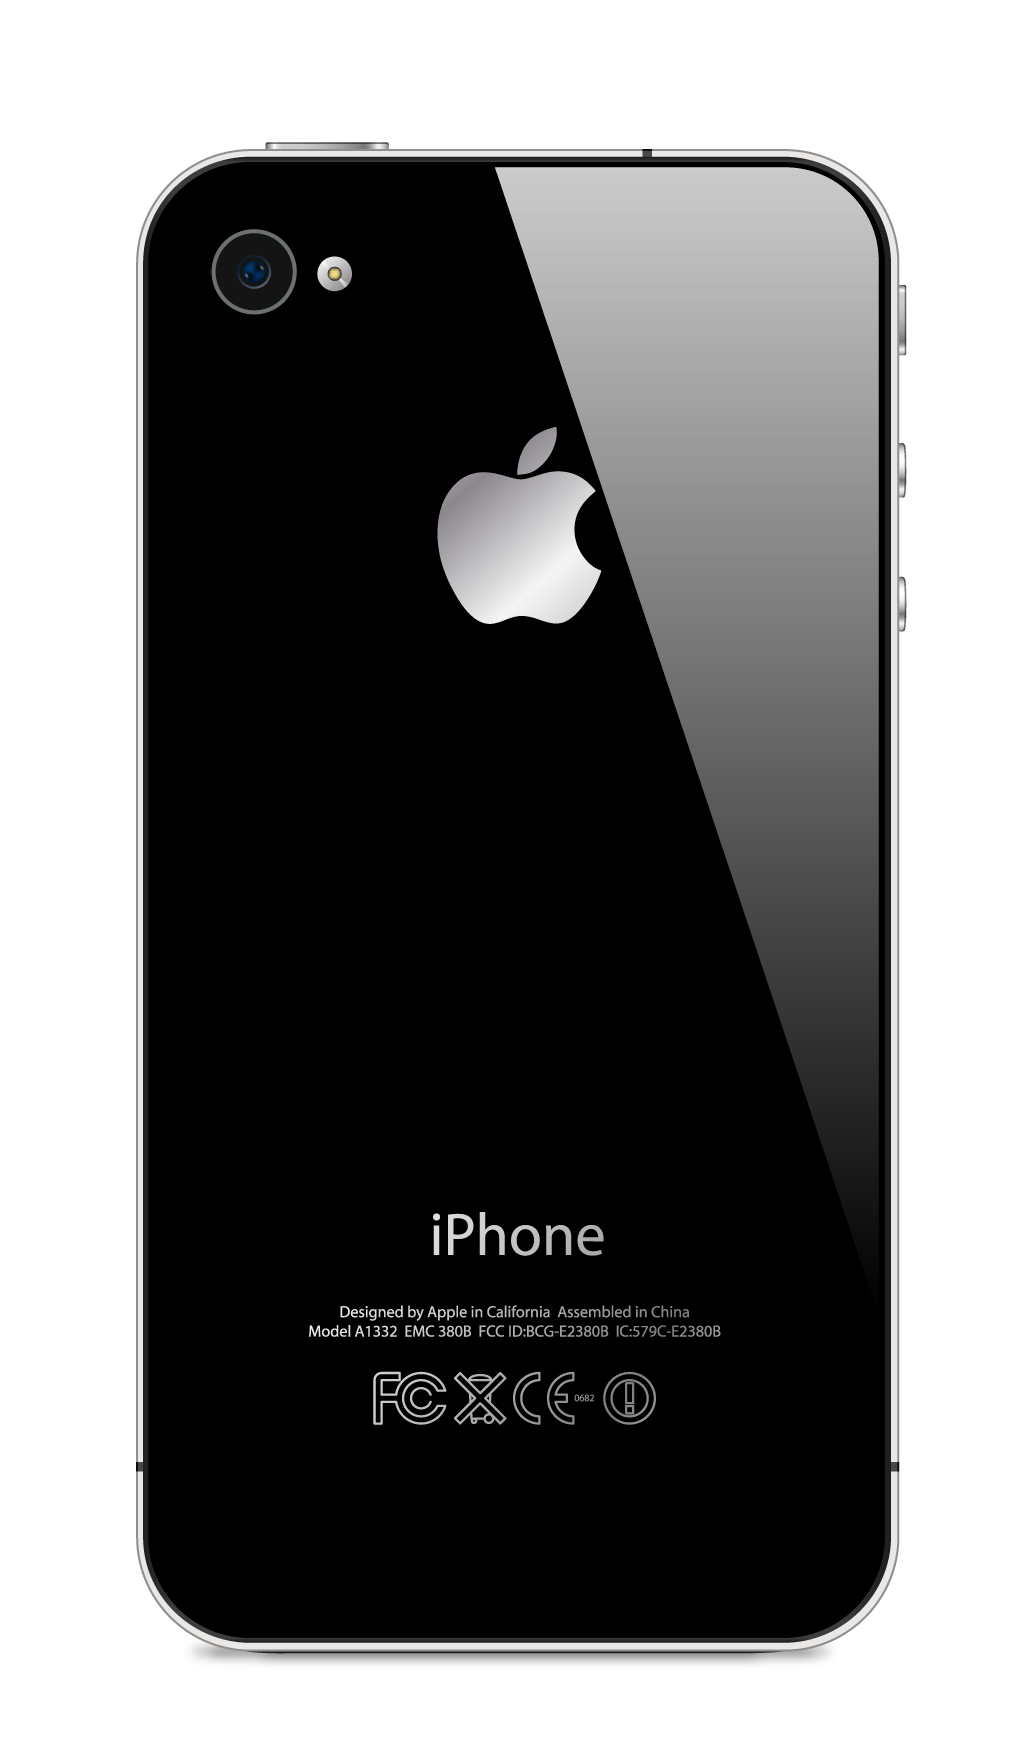 Png iphone. Apple images free download